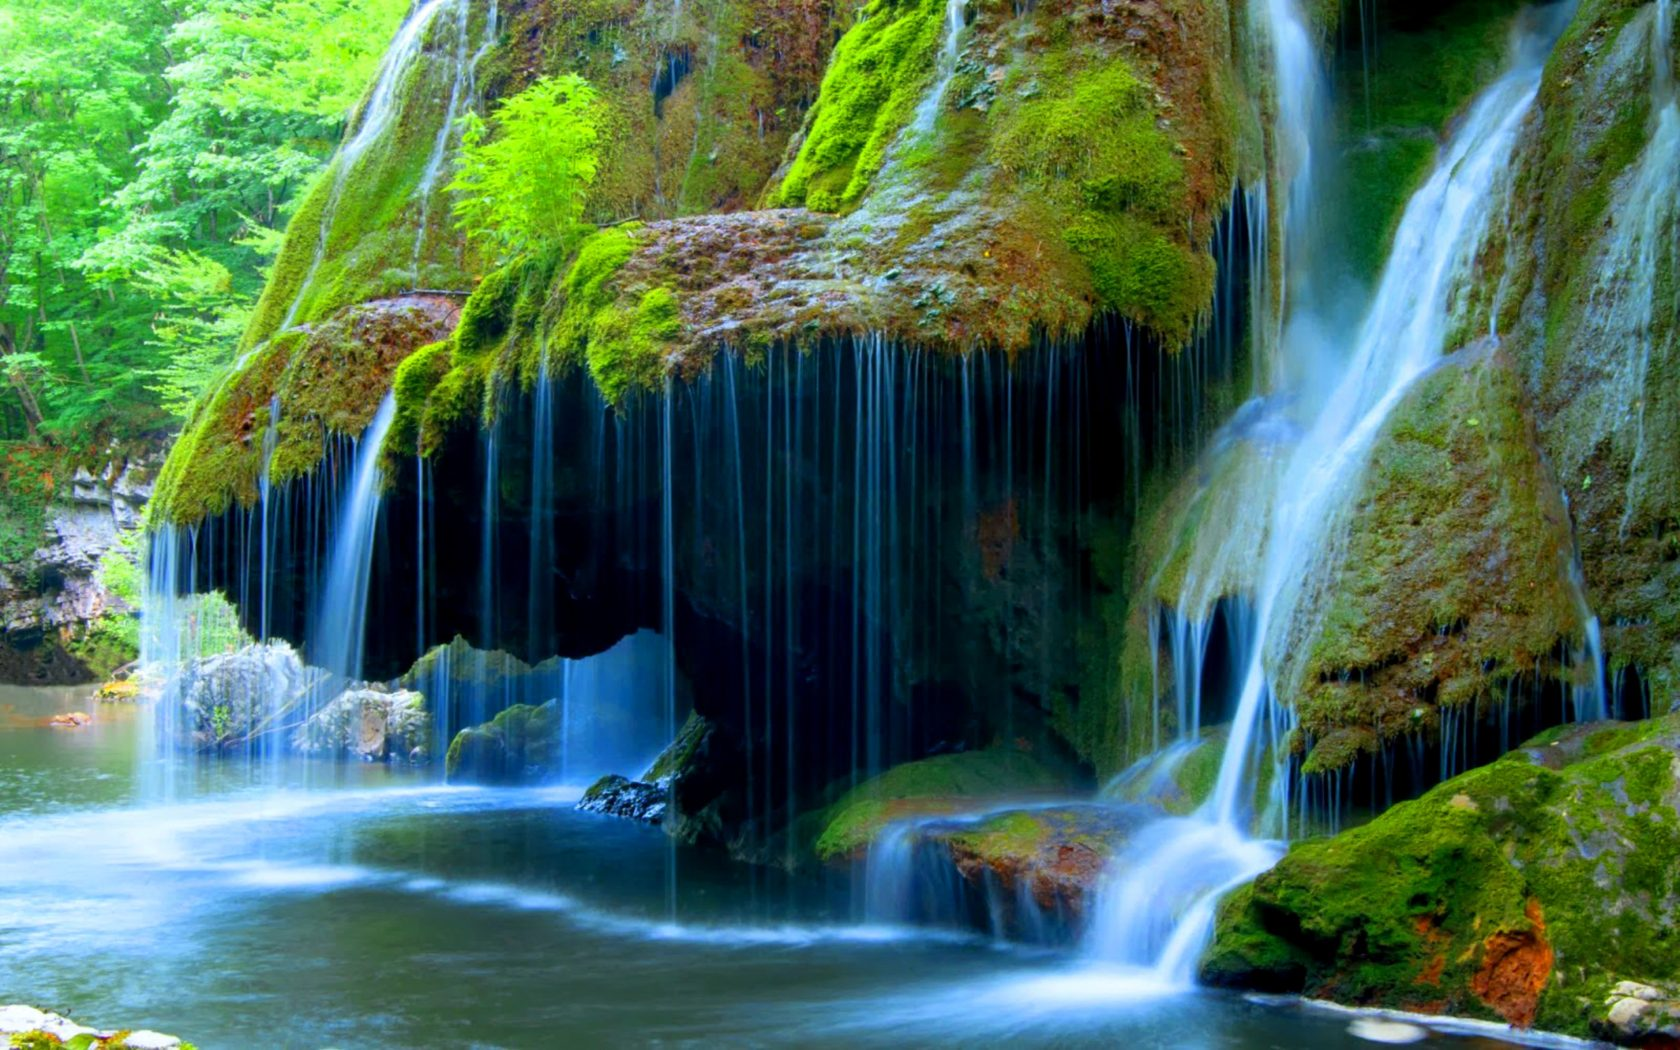 Iphone 5 Panorama Wallpaper Bigar Cascade Falls Beautiful Waterfall In Caras Severin